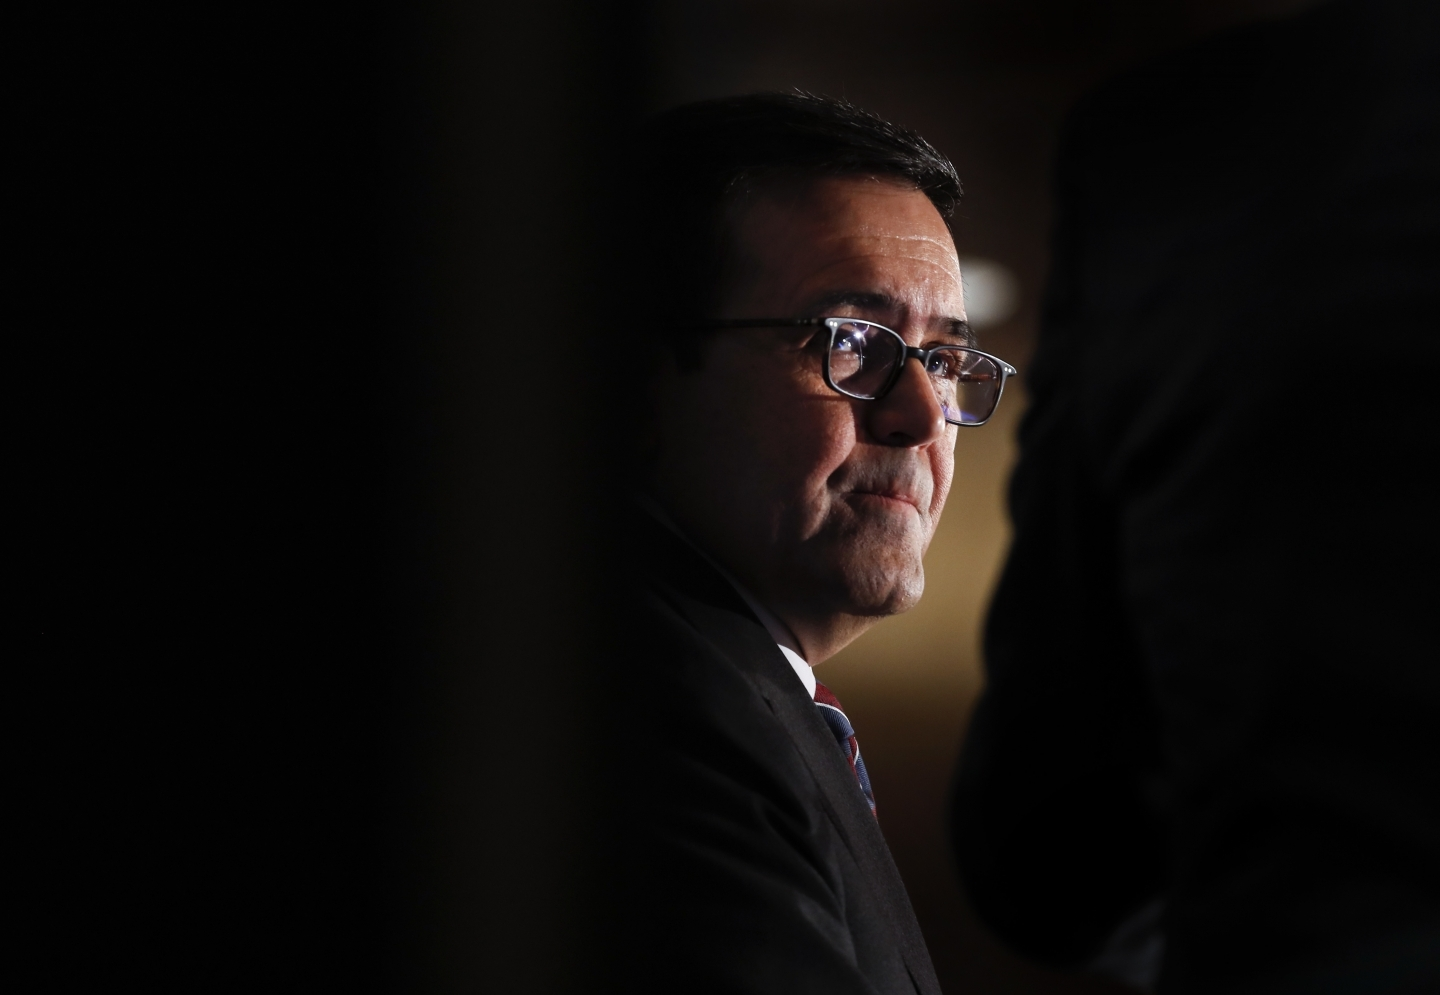 Mexican Economy Minister Ildefonso Guajardo said he and US Trade Representative Robert Lighthizer agreed they would need to work to hash out a deal in principle by the end of August. (AP Photo/Paul Sancya)